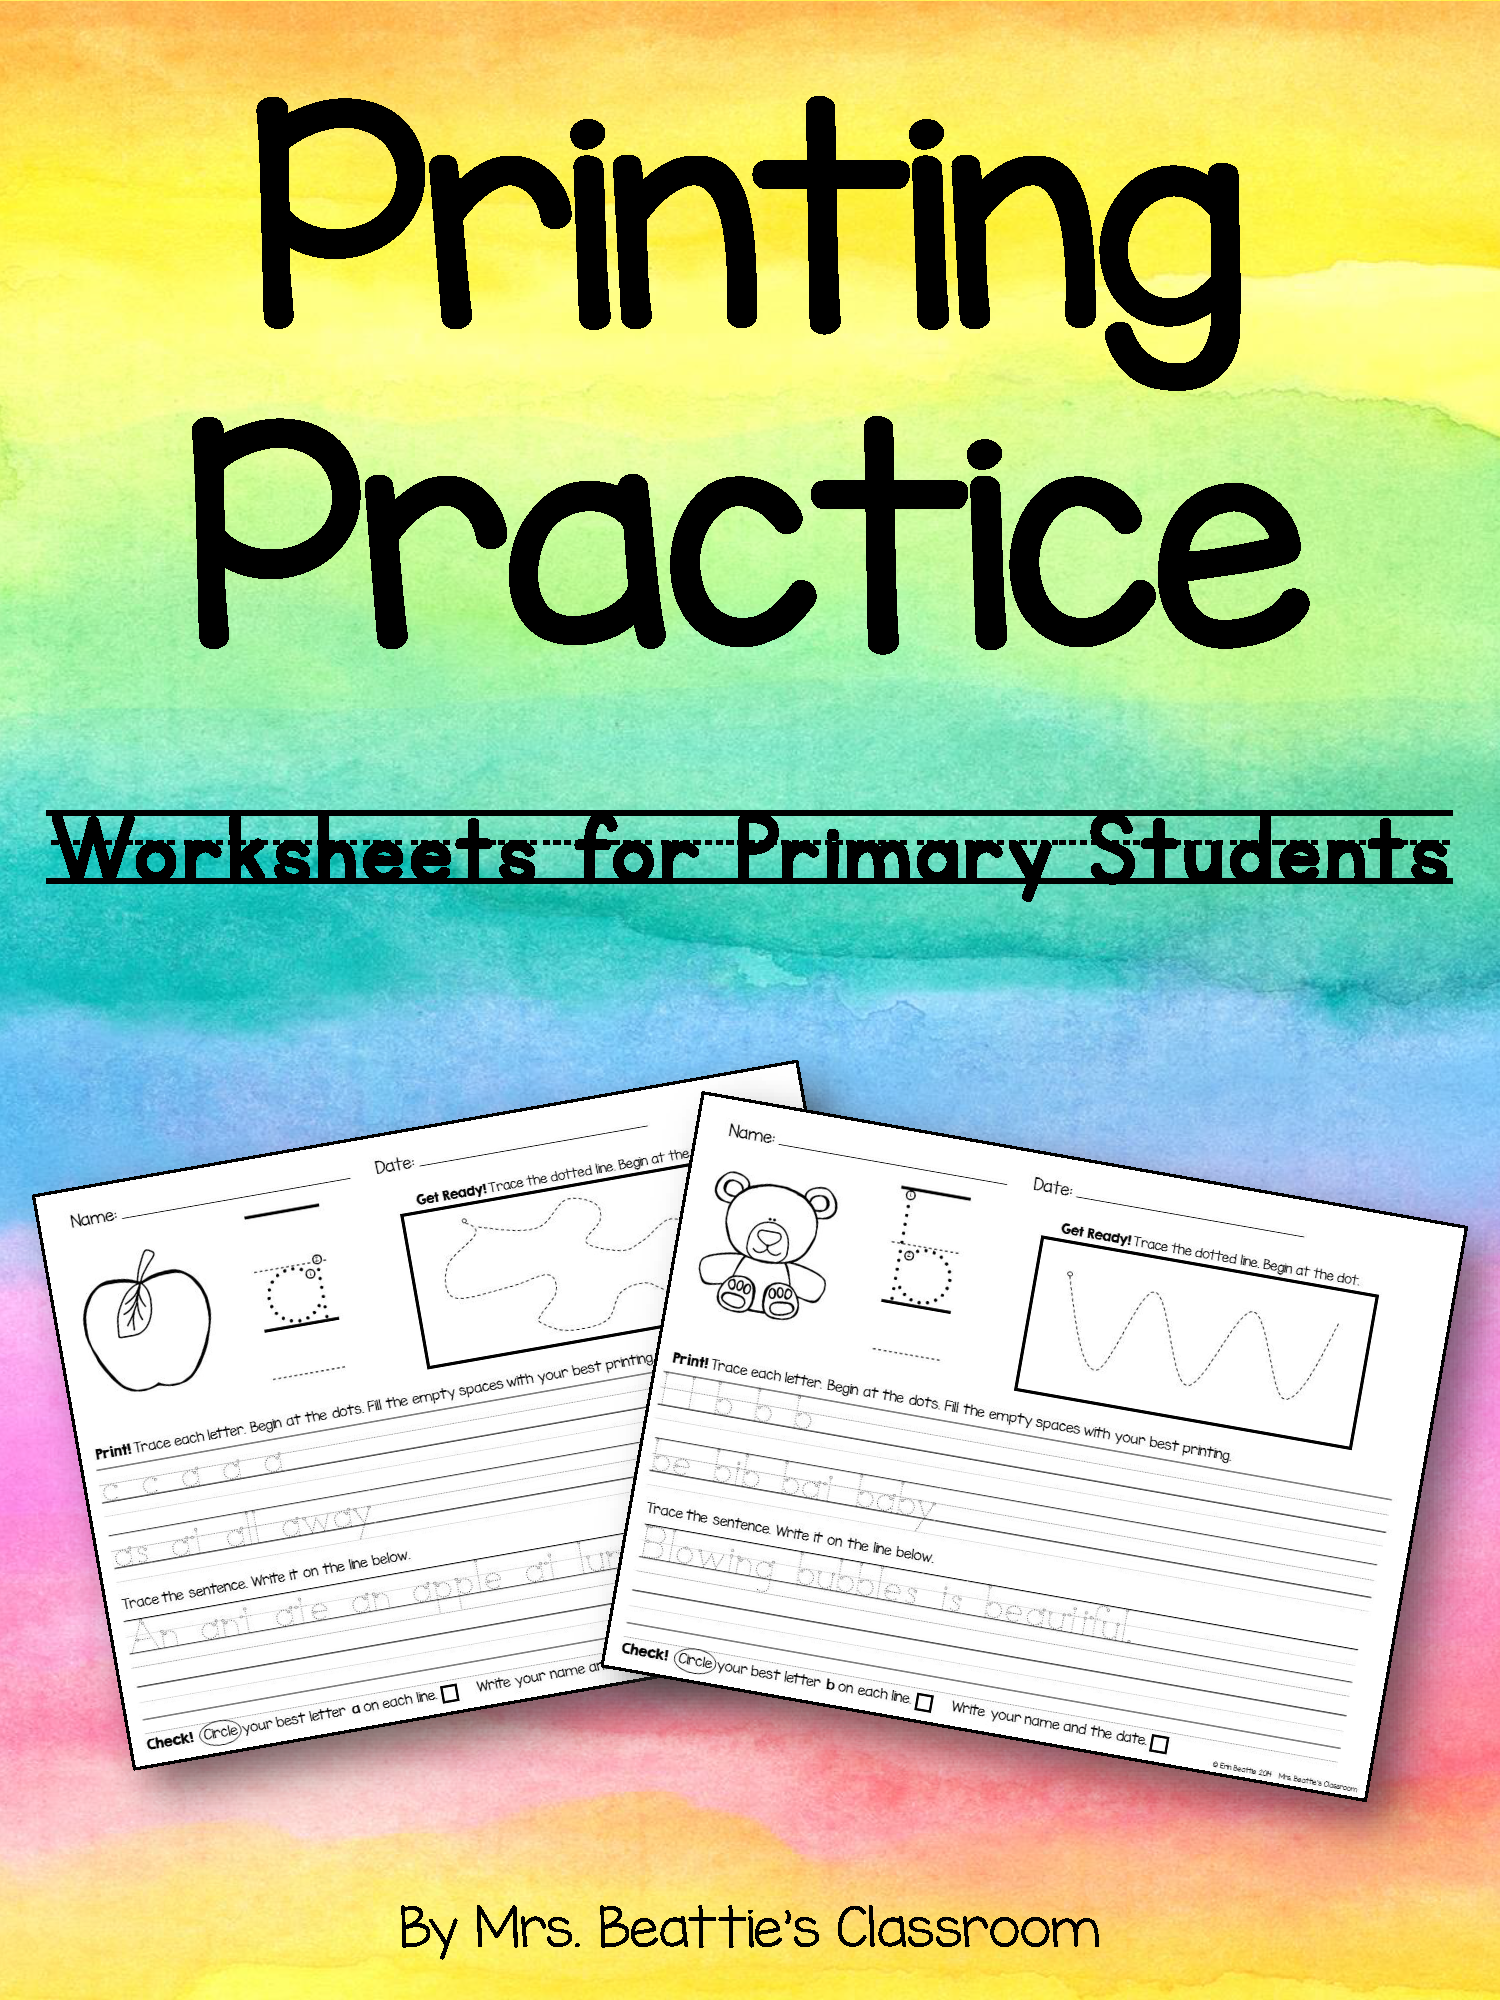 Printing Practice Worksheets With Warm Up Activity With